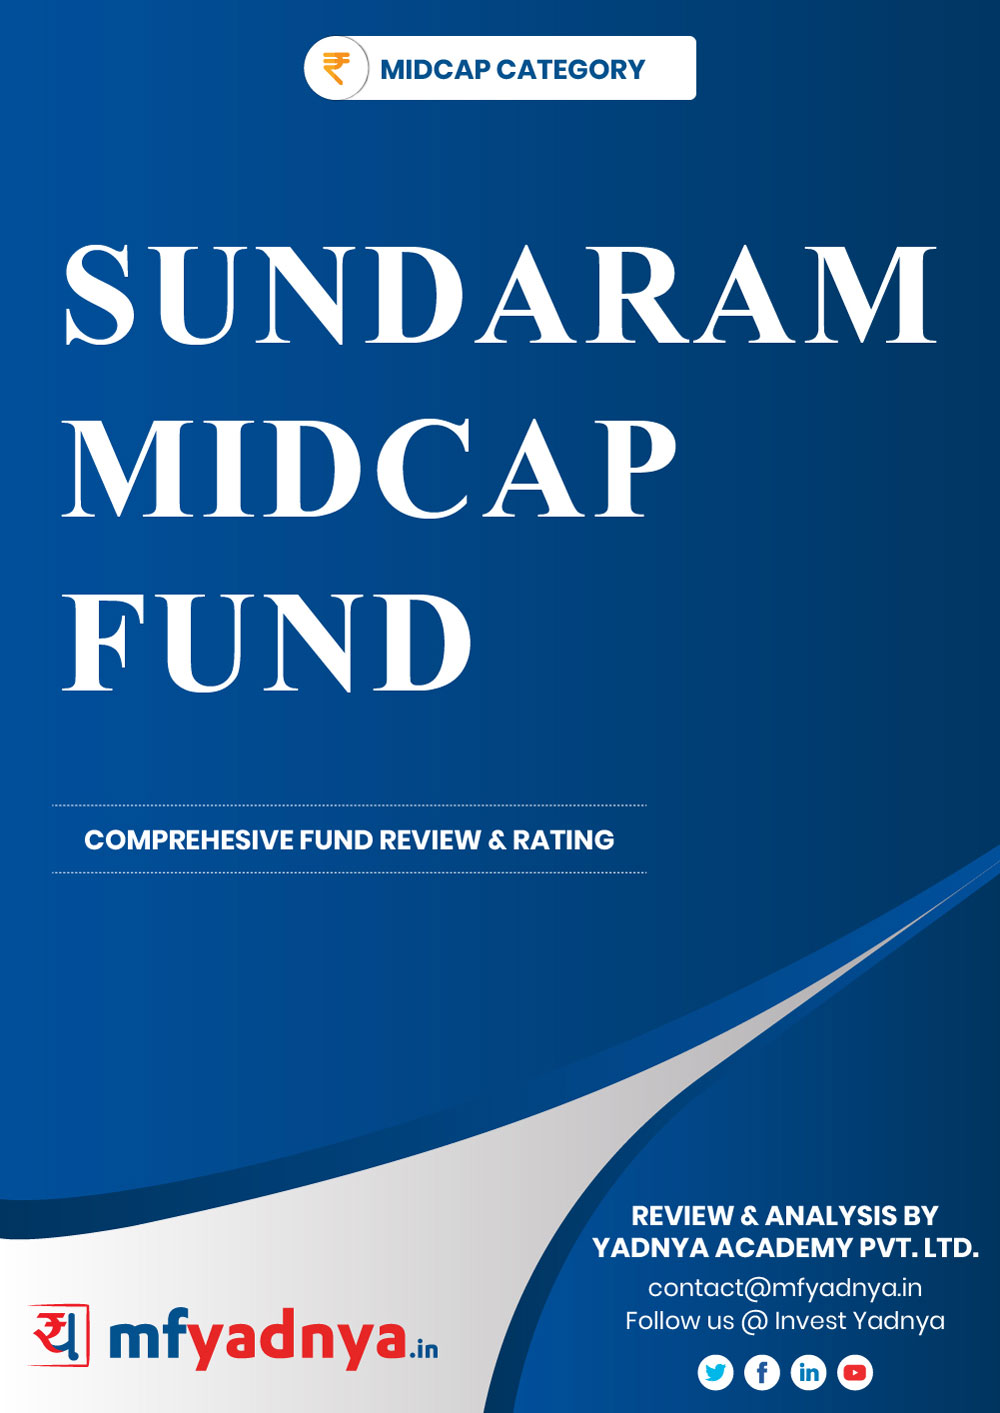 Midcap Category Review -  Sundaram Mid Cap Fund . Most Comprehensive and detailed MF review based on Yadnya's proprietary methodology of Green, Yellow & Red Star. Detailed Analysis & Review based on Oct 31st, 2019 data.